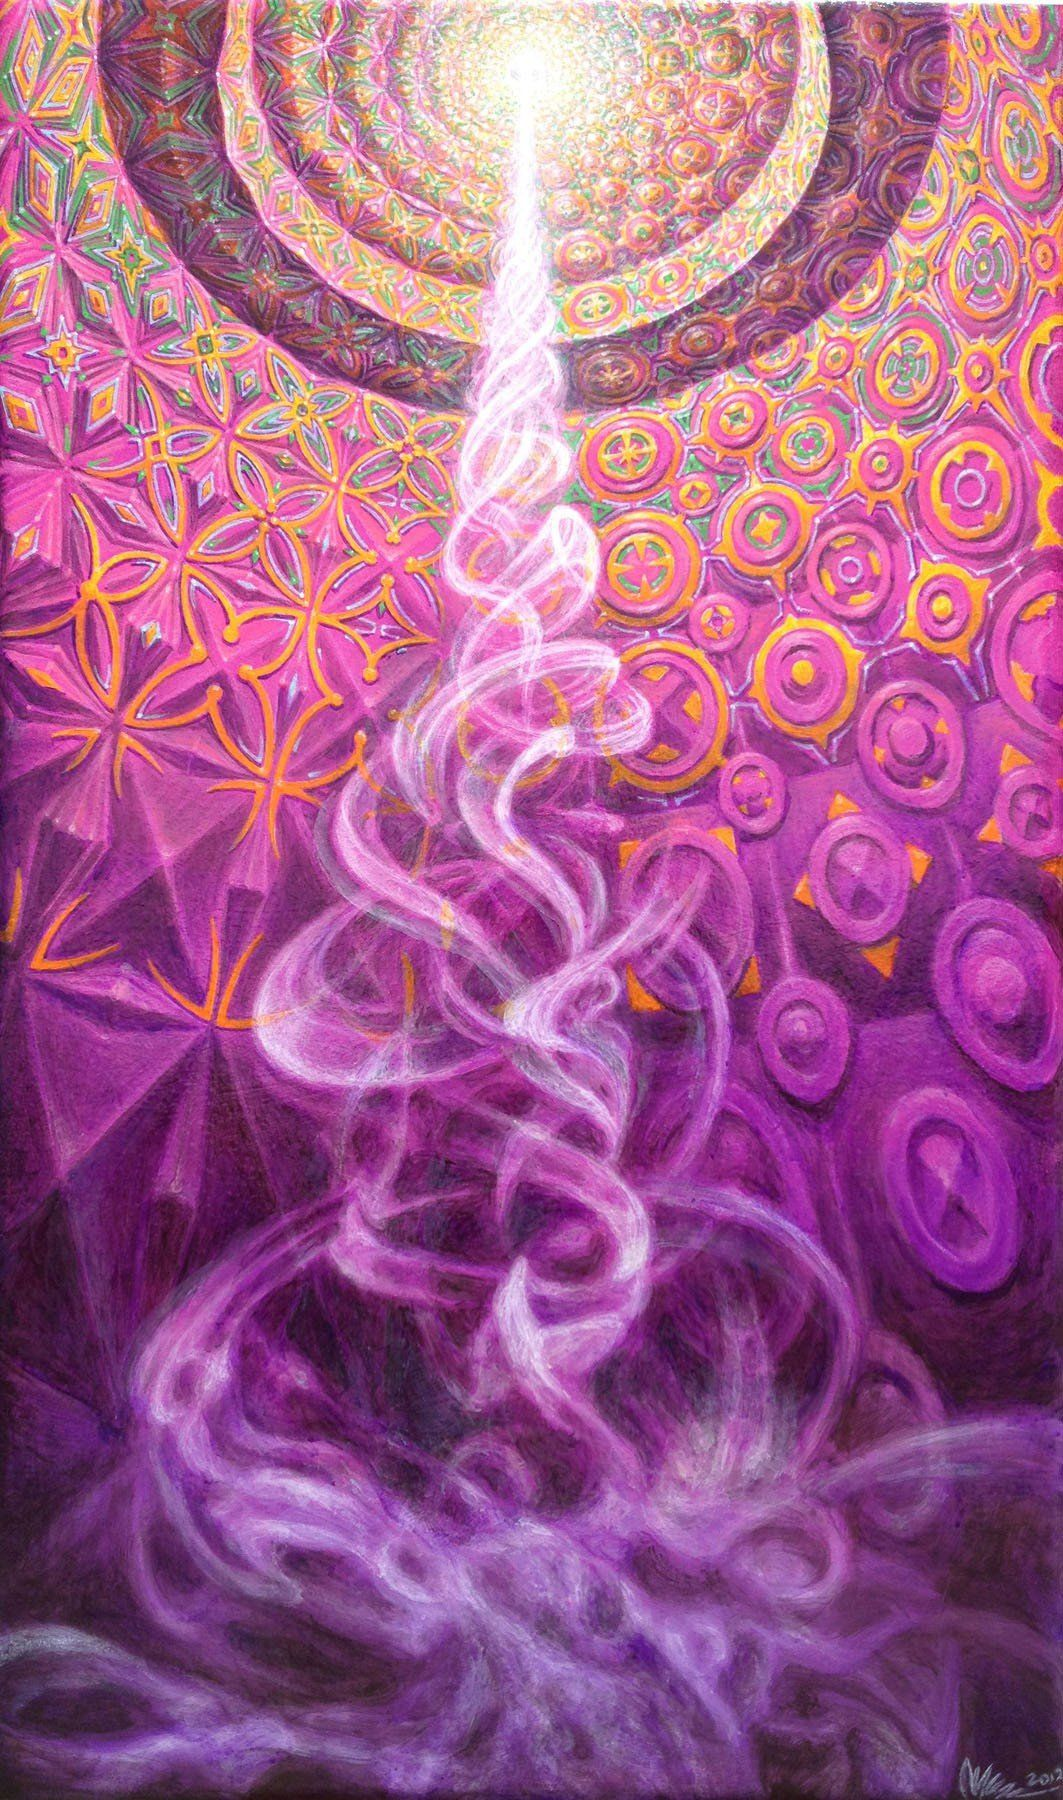 DMT Nexus visions | Hyperspace | Psychedelic art, Visionary